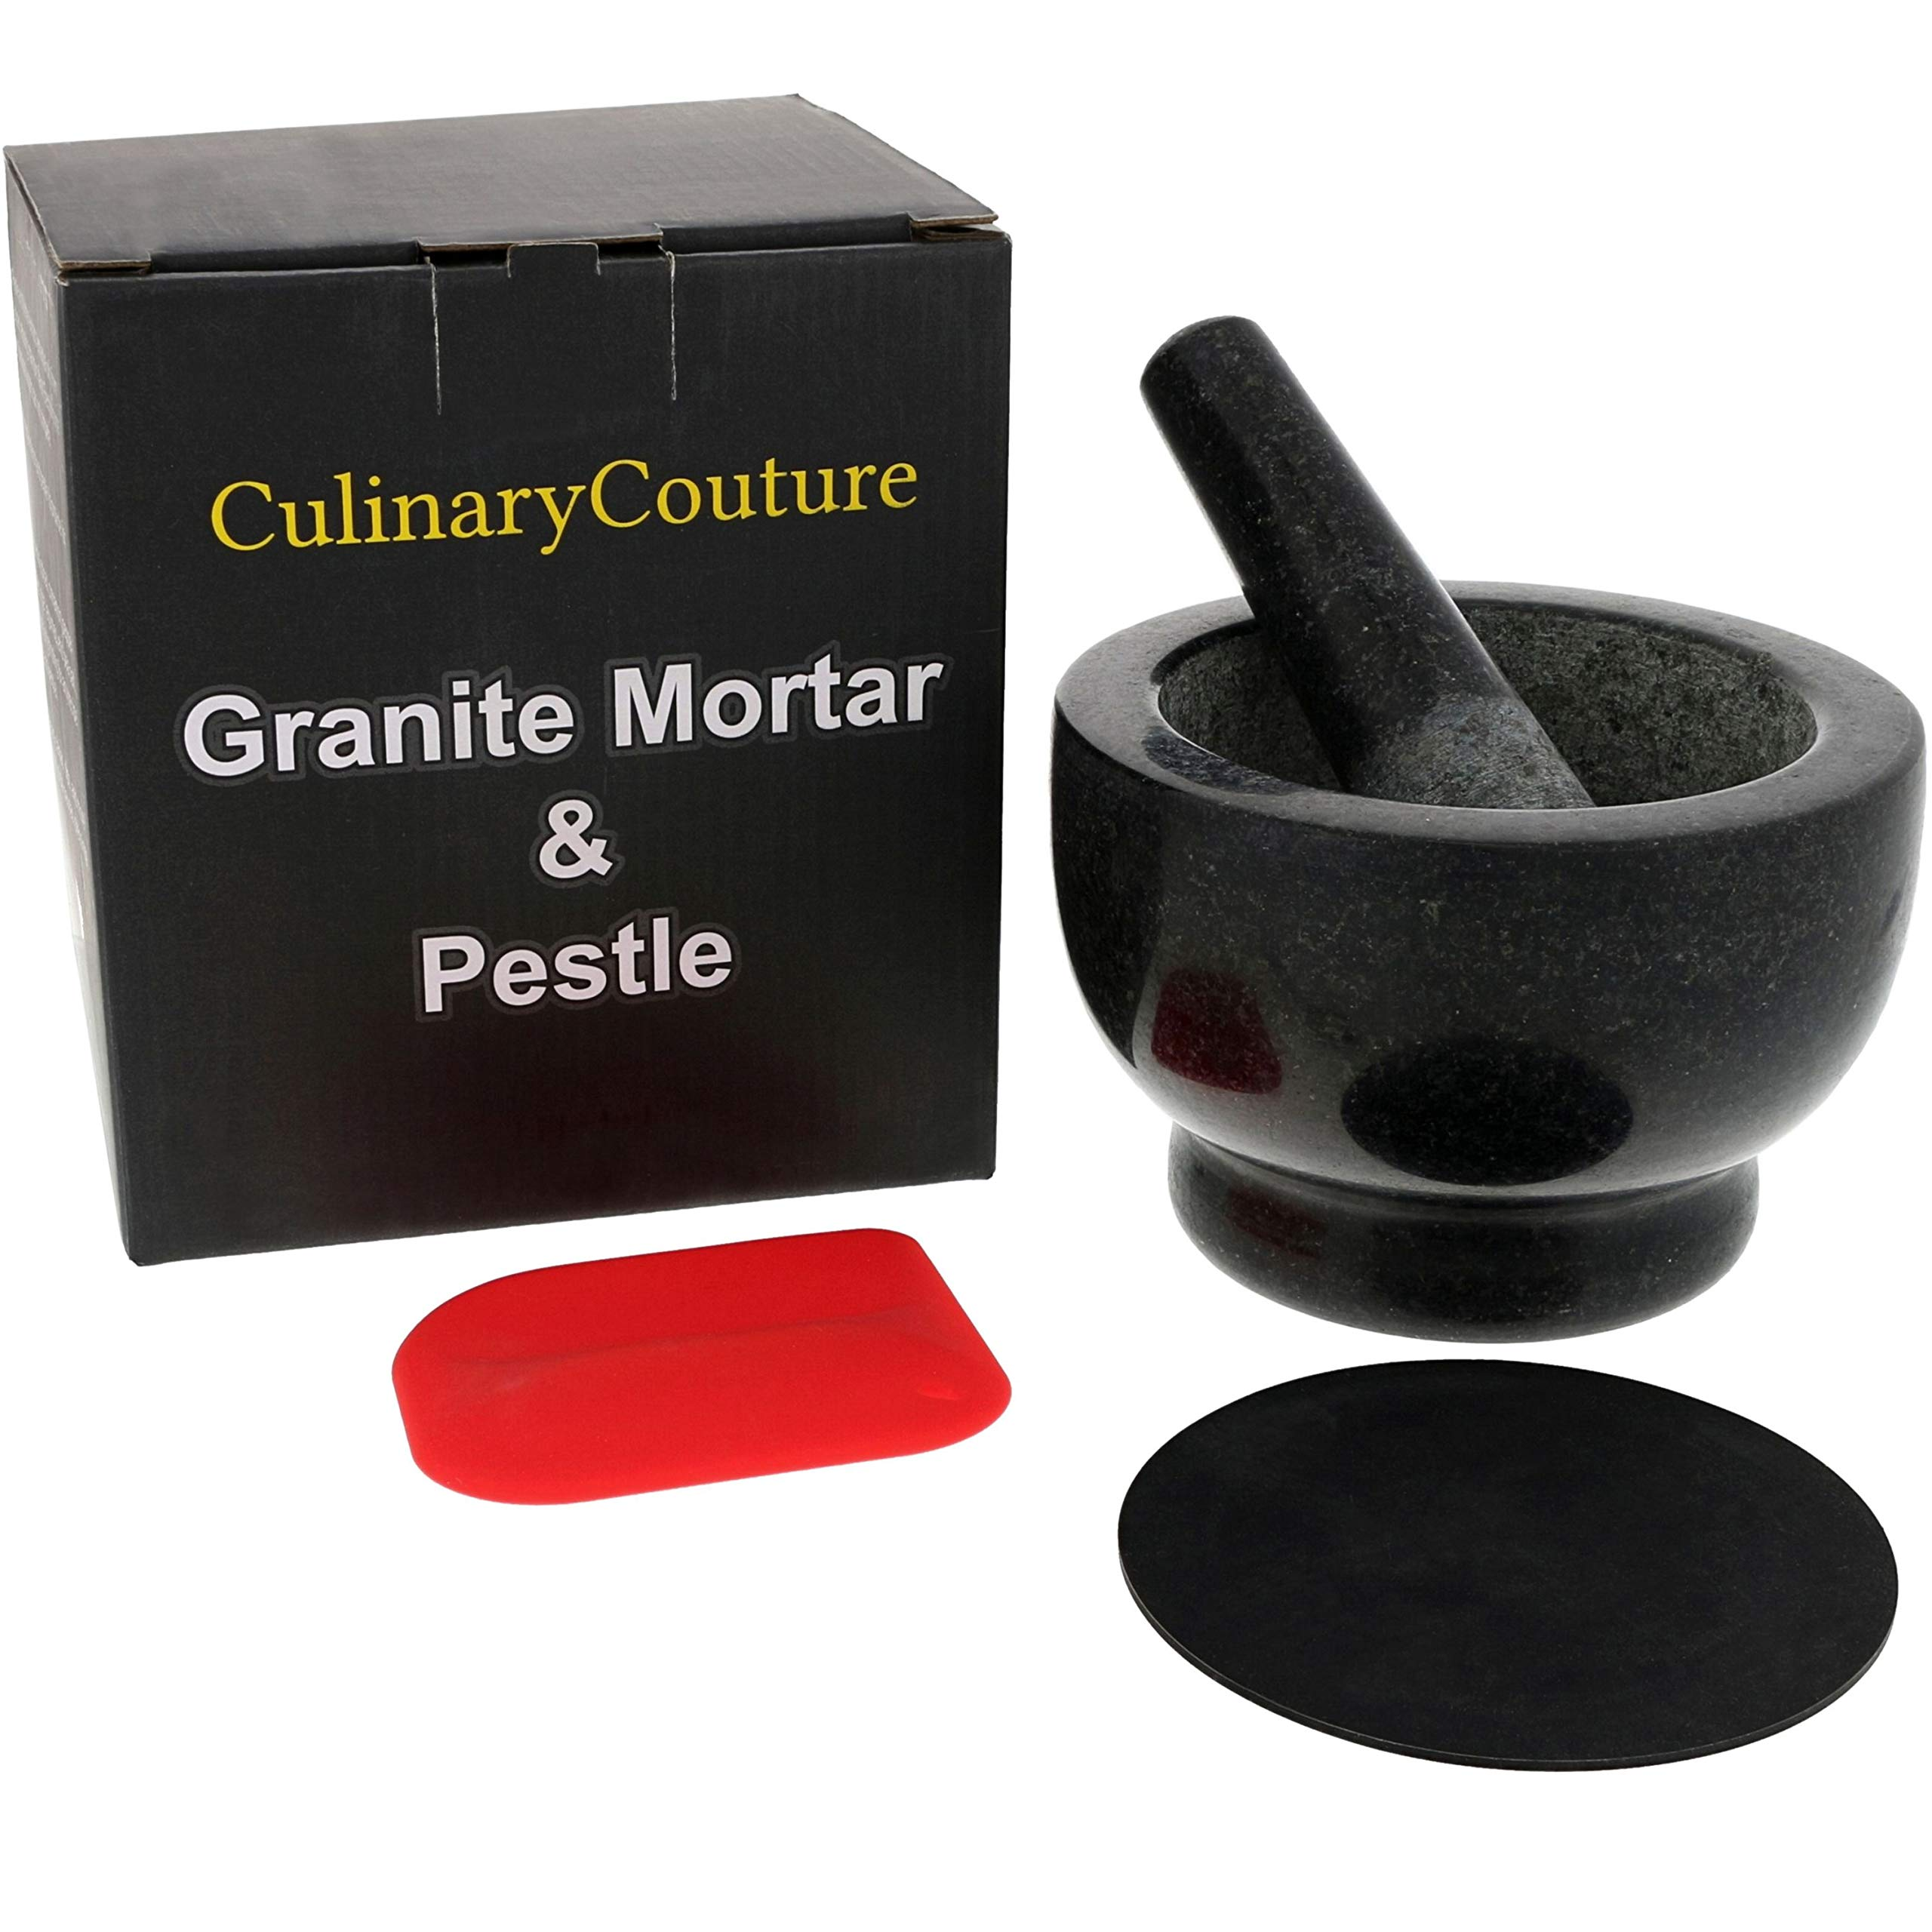 Granite Mortar and Pestle Set - Molcajete - Guacamole Bowl With Polished Exterior, Stylish Dark Grinder And Crusher - WITH Silicone Mat & Scraper by Culinary Couture